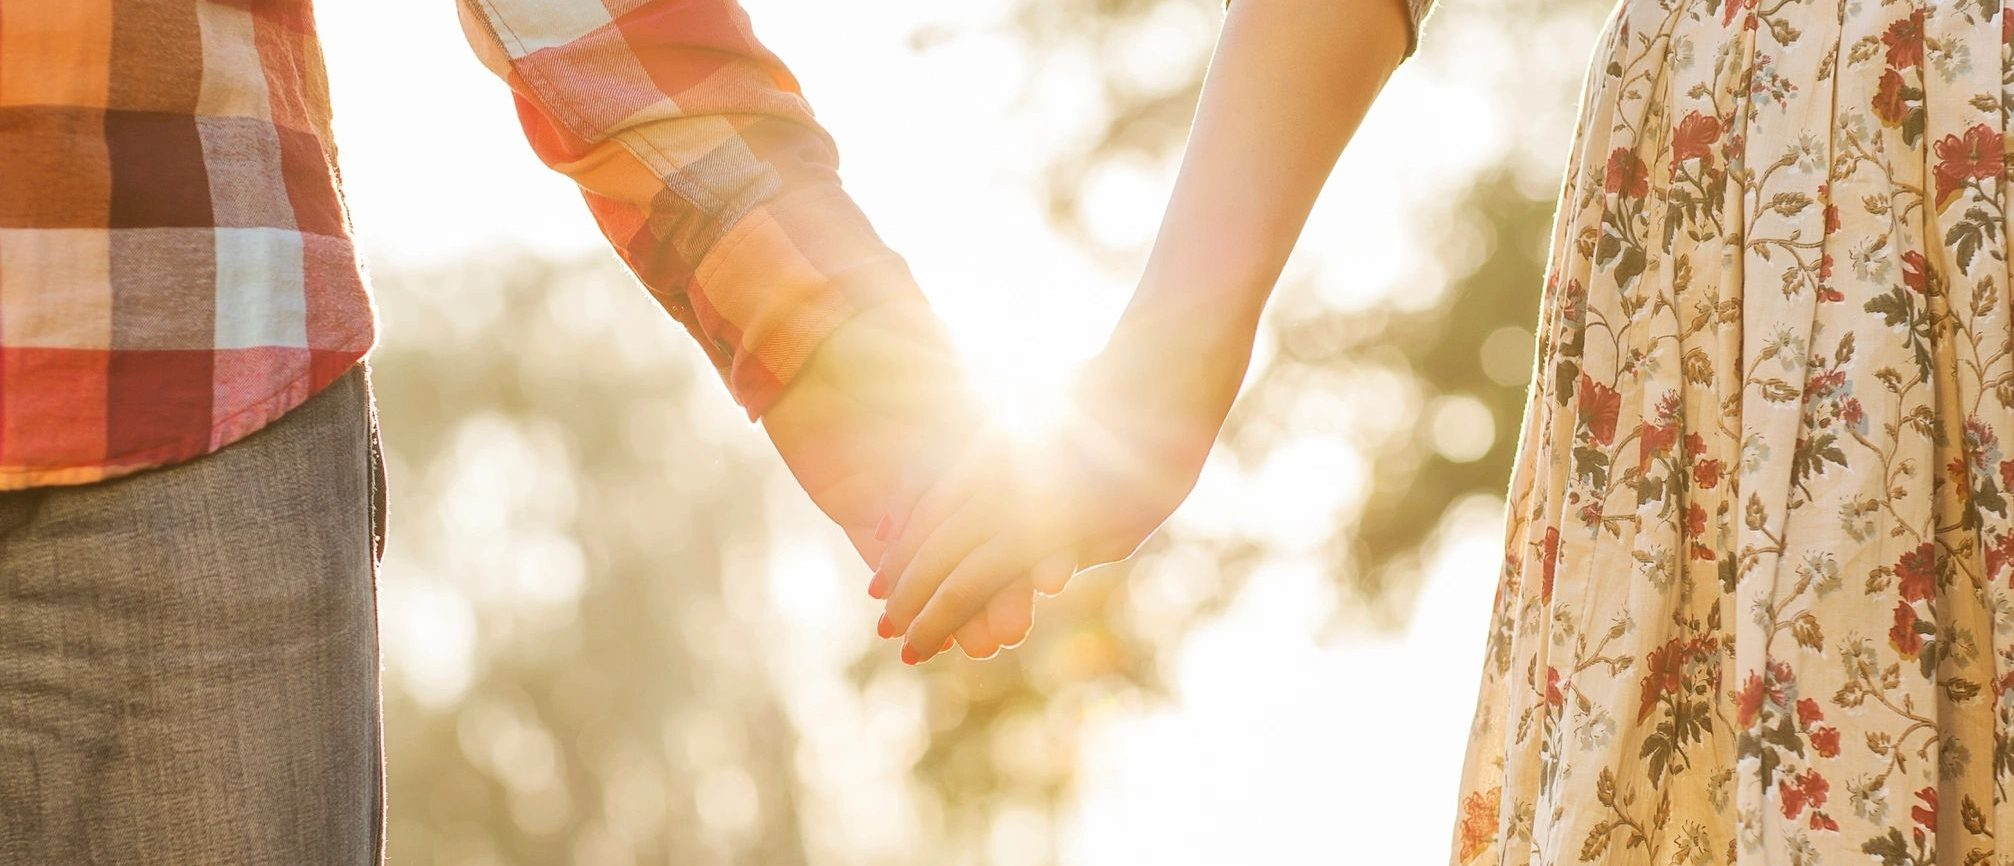 Two people holding hands. Where their hands meet, the sun shines.